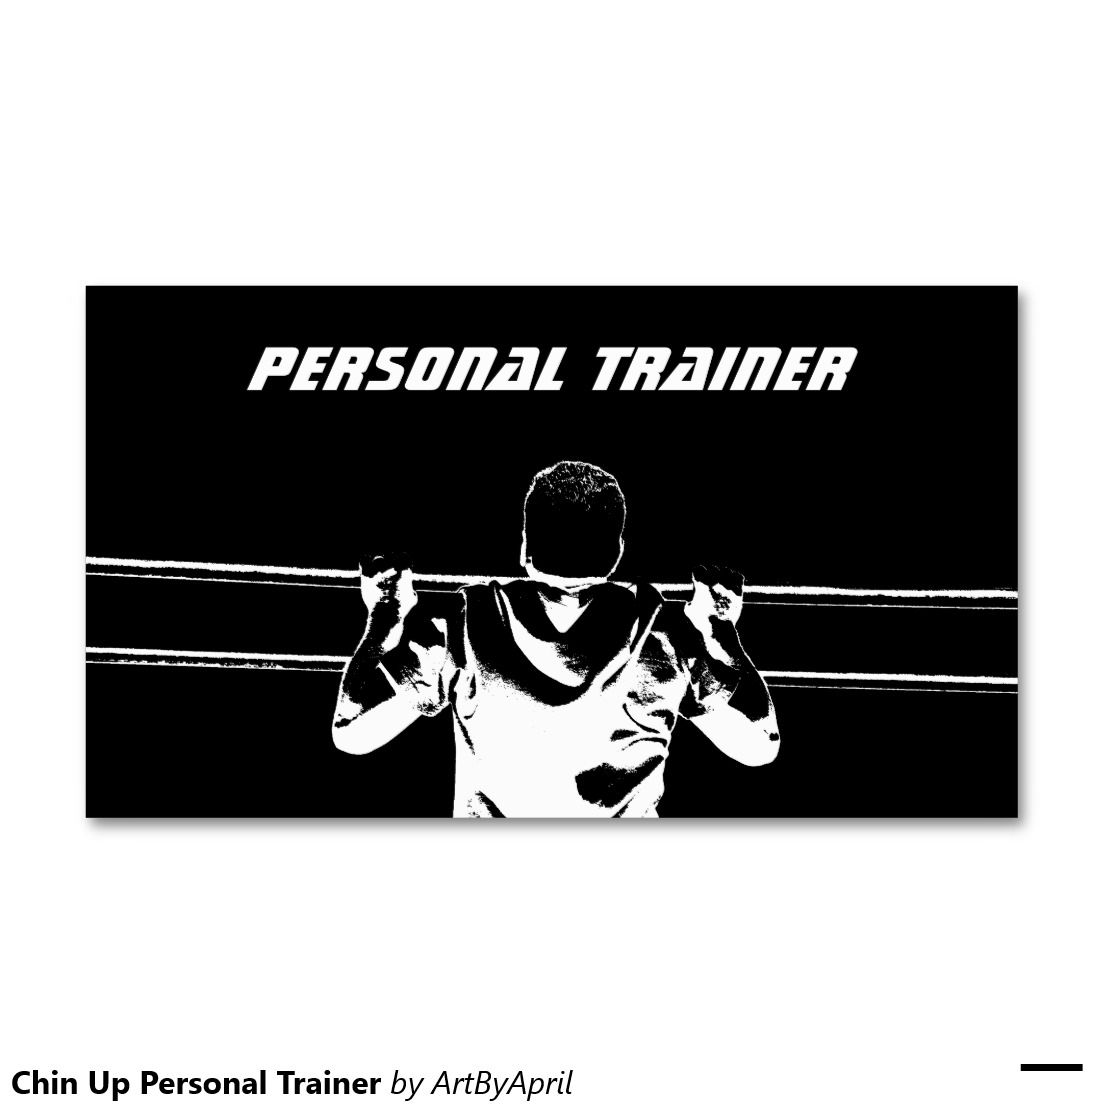 Chin up personal trainer double sided standard business cards pack chin up personal trainer double sided standard business cards pack of 100 accmission Gallery